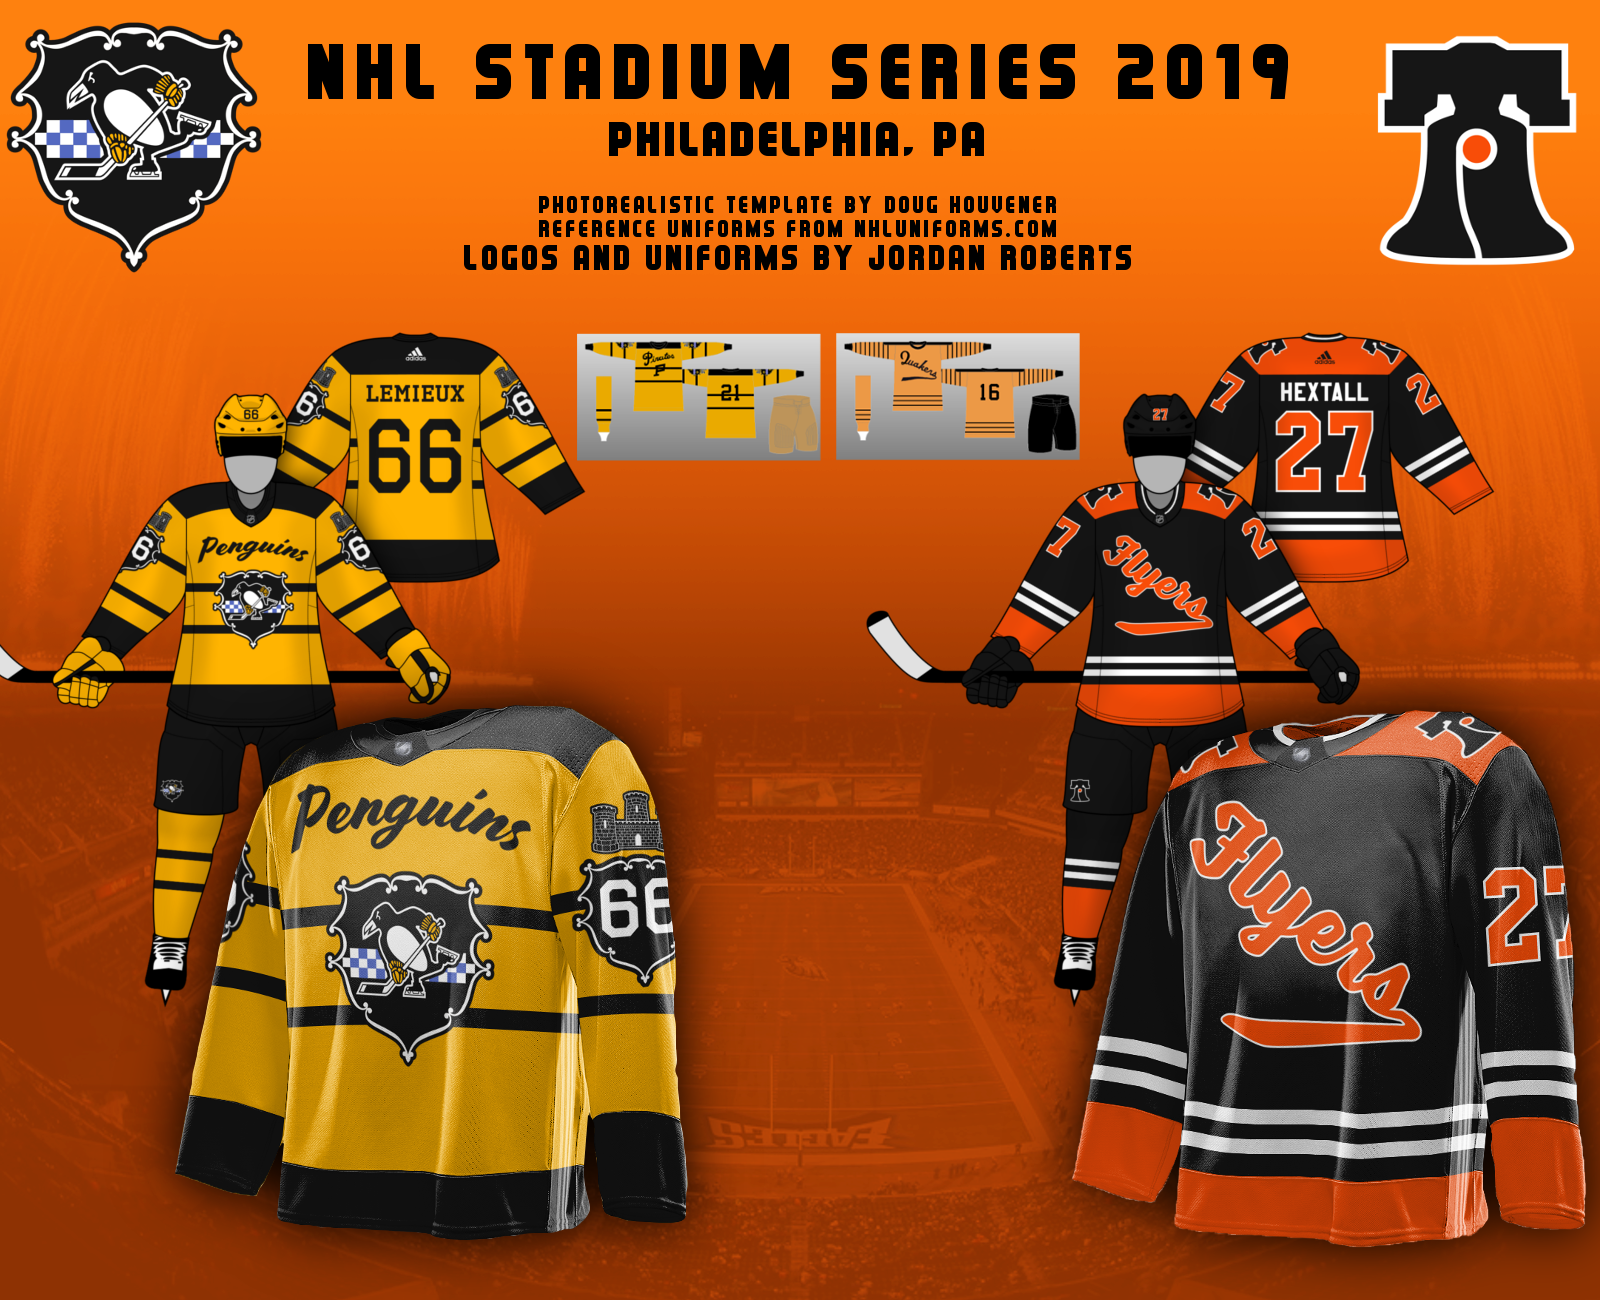 46e982c3519 Jordan R- 2019 Stadium Series. Positives: Out of the two jerseys, I feel  like you put more time into the Penguins jersey when it came to creativity  but both ...